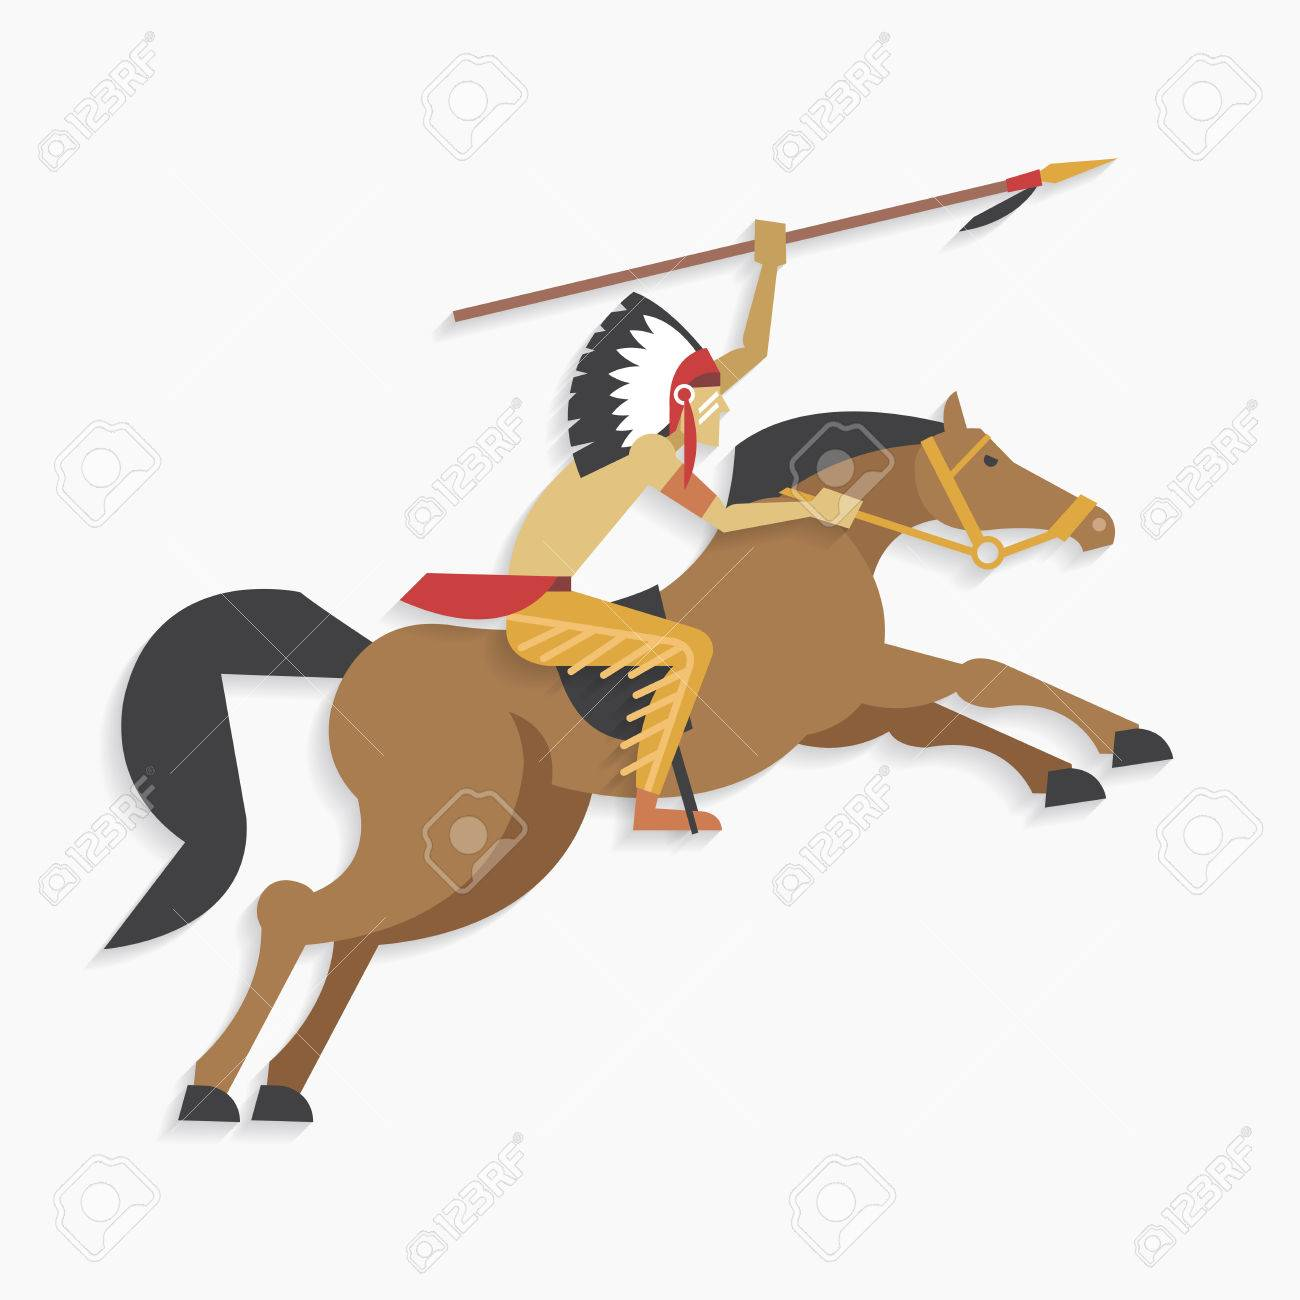 Native American Indian Chief With Spear Riding Horse Royalty Free Cliparts Vectors And Stock Illustration Image 37056157